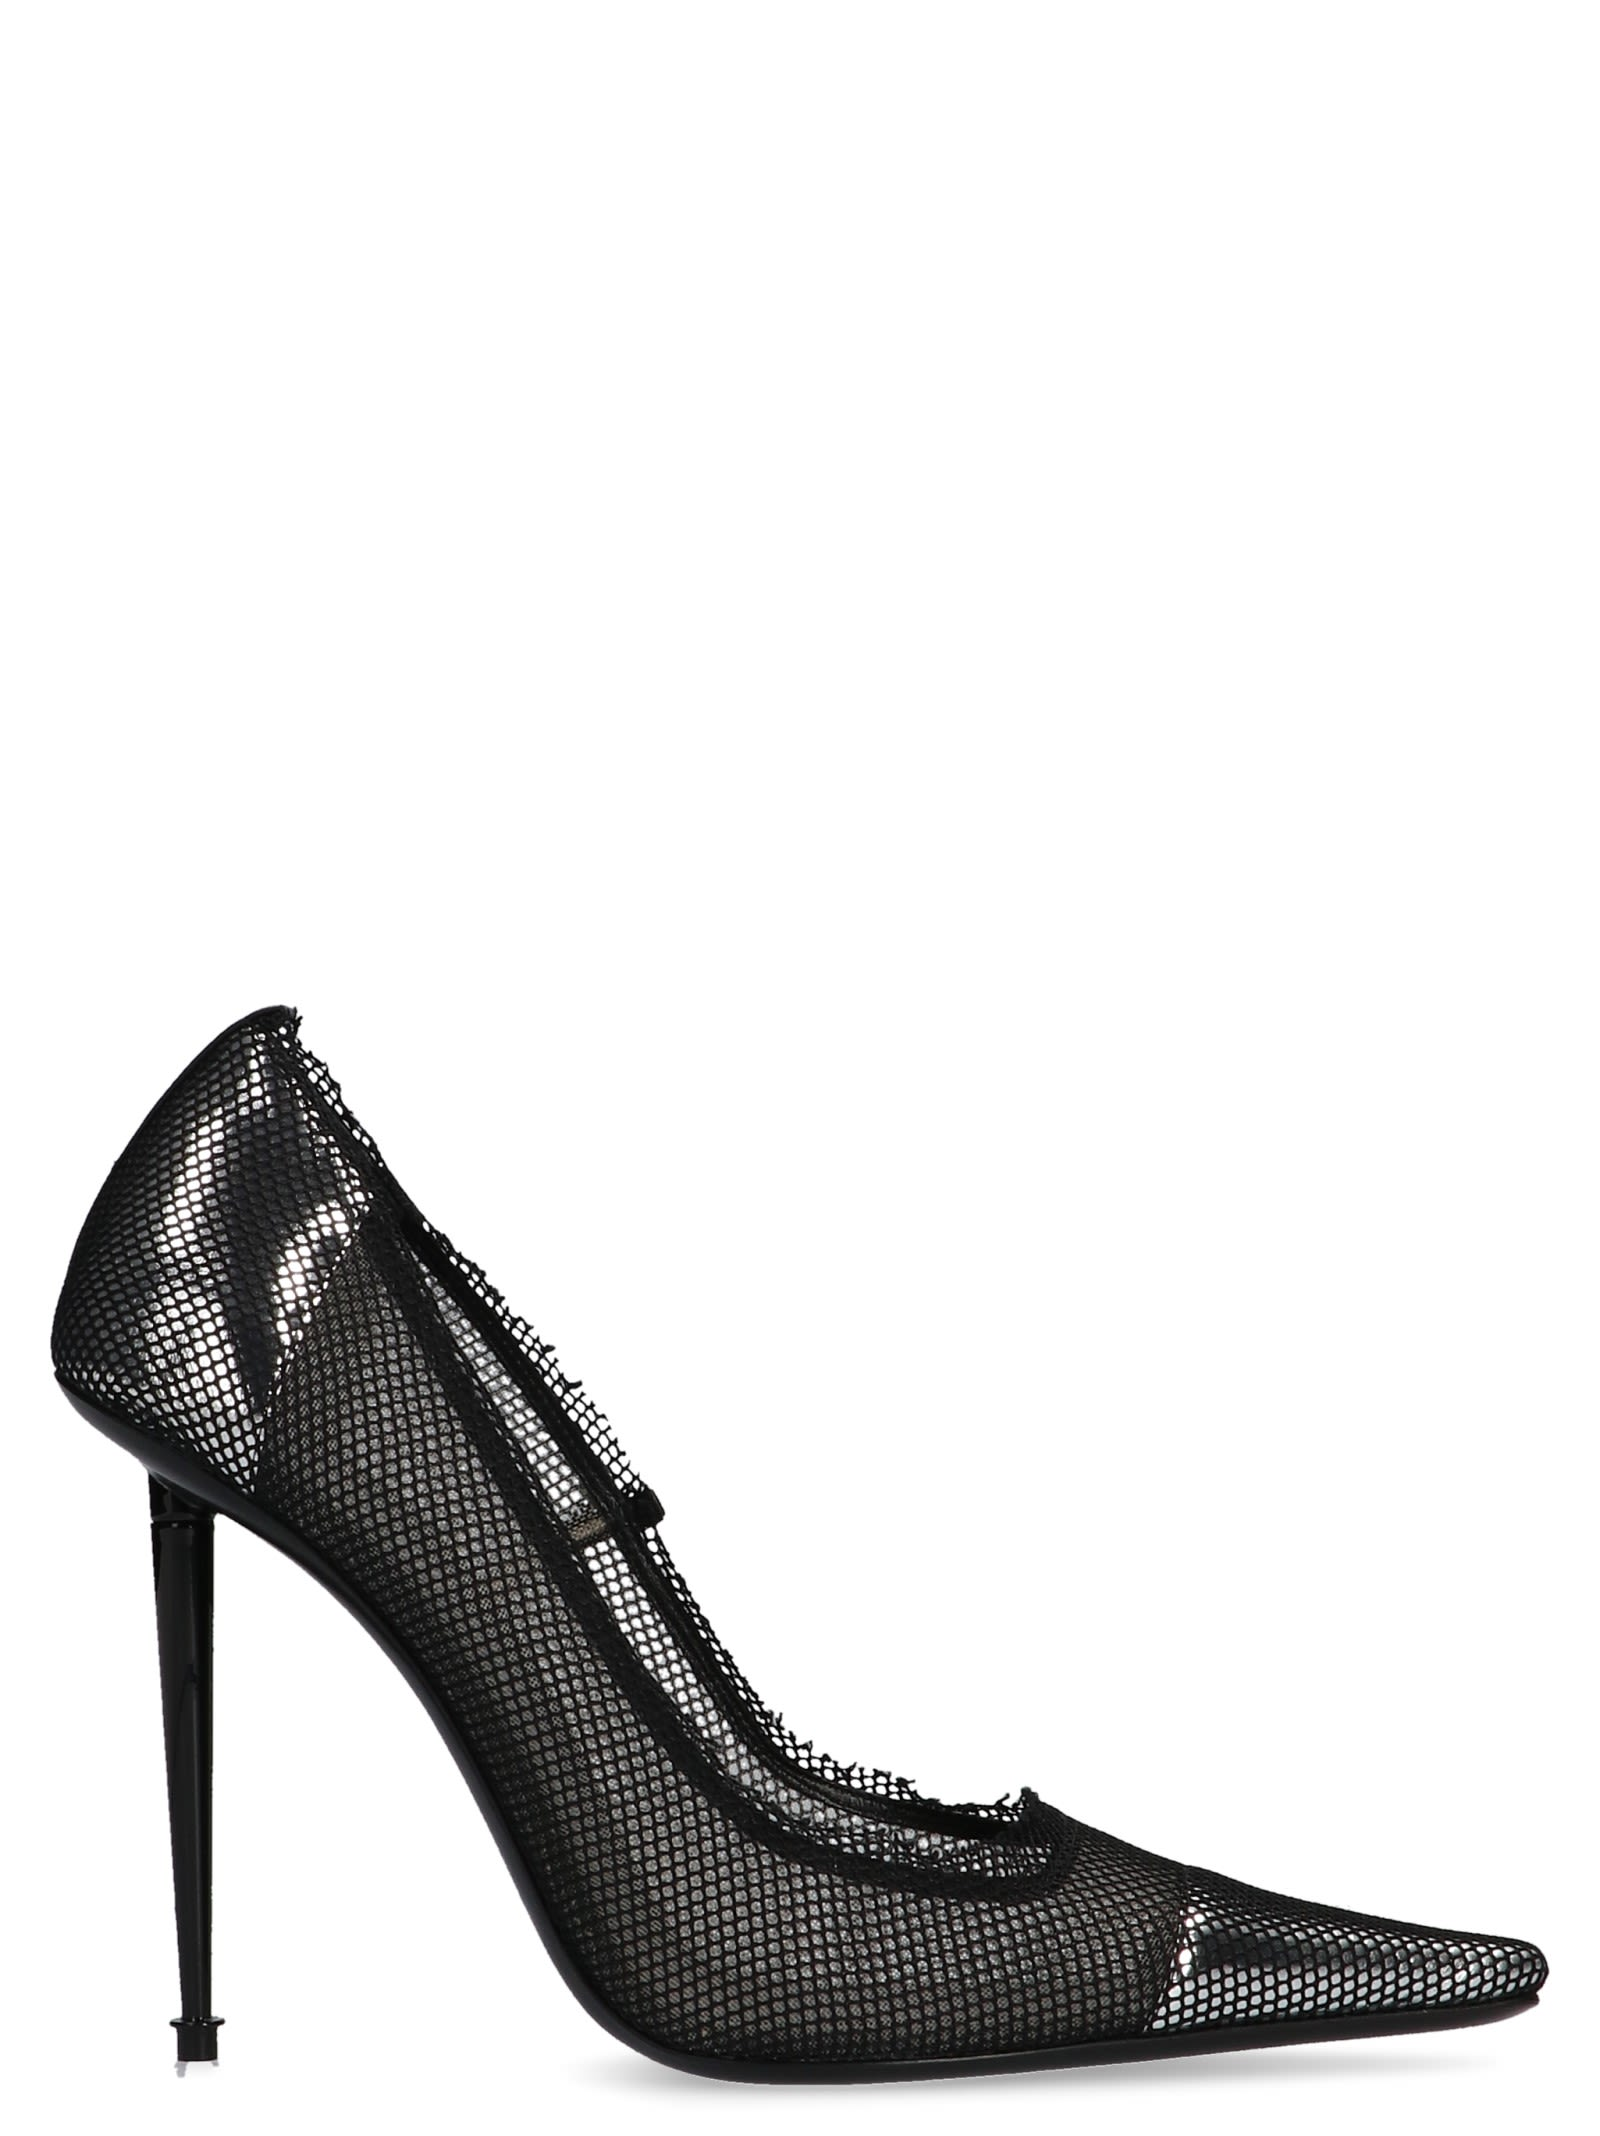 Tom Ford 'net' Shoes